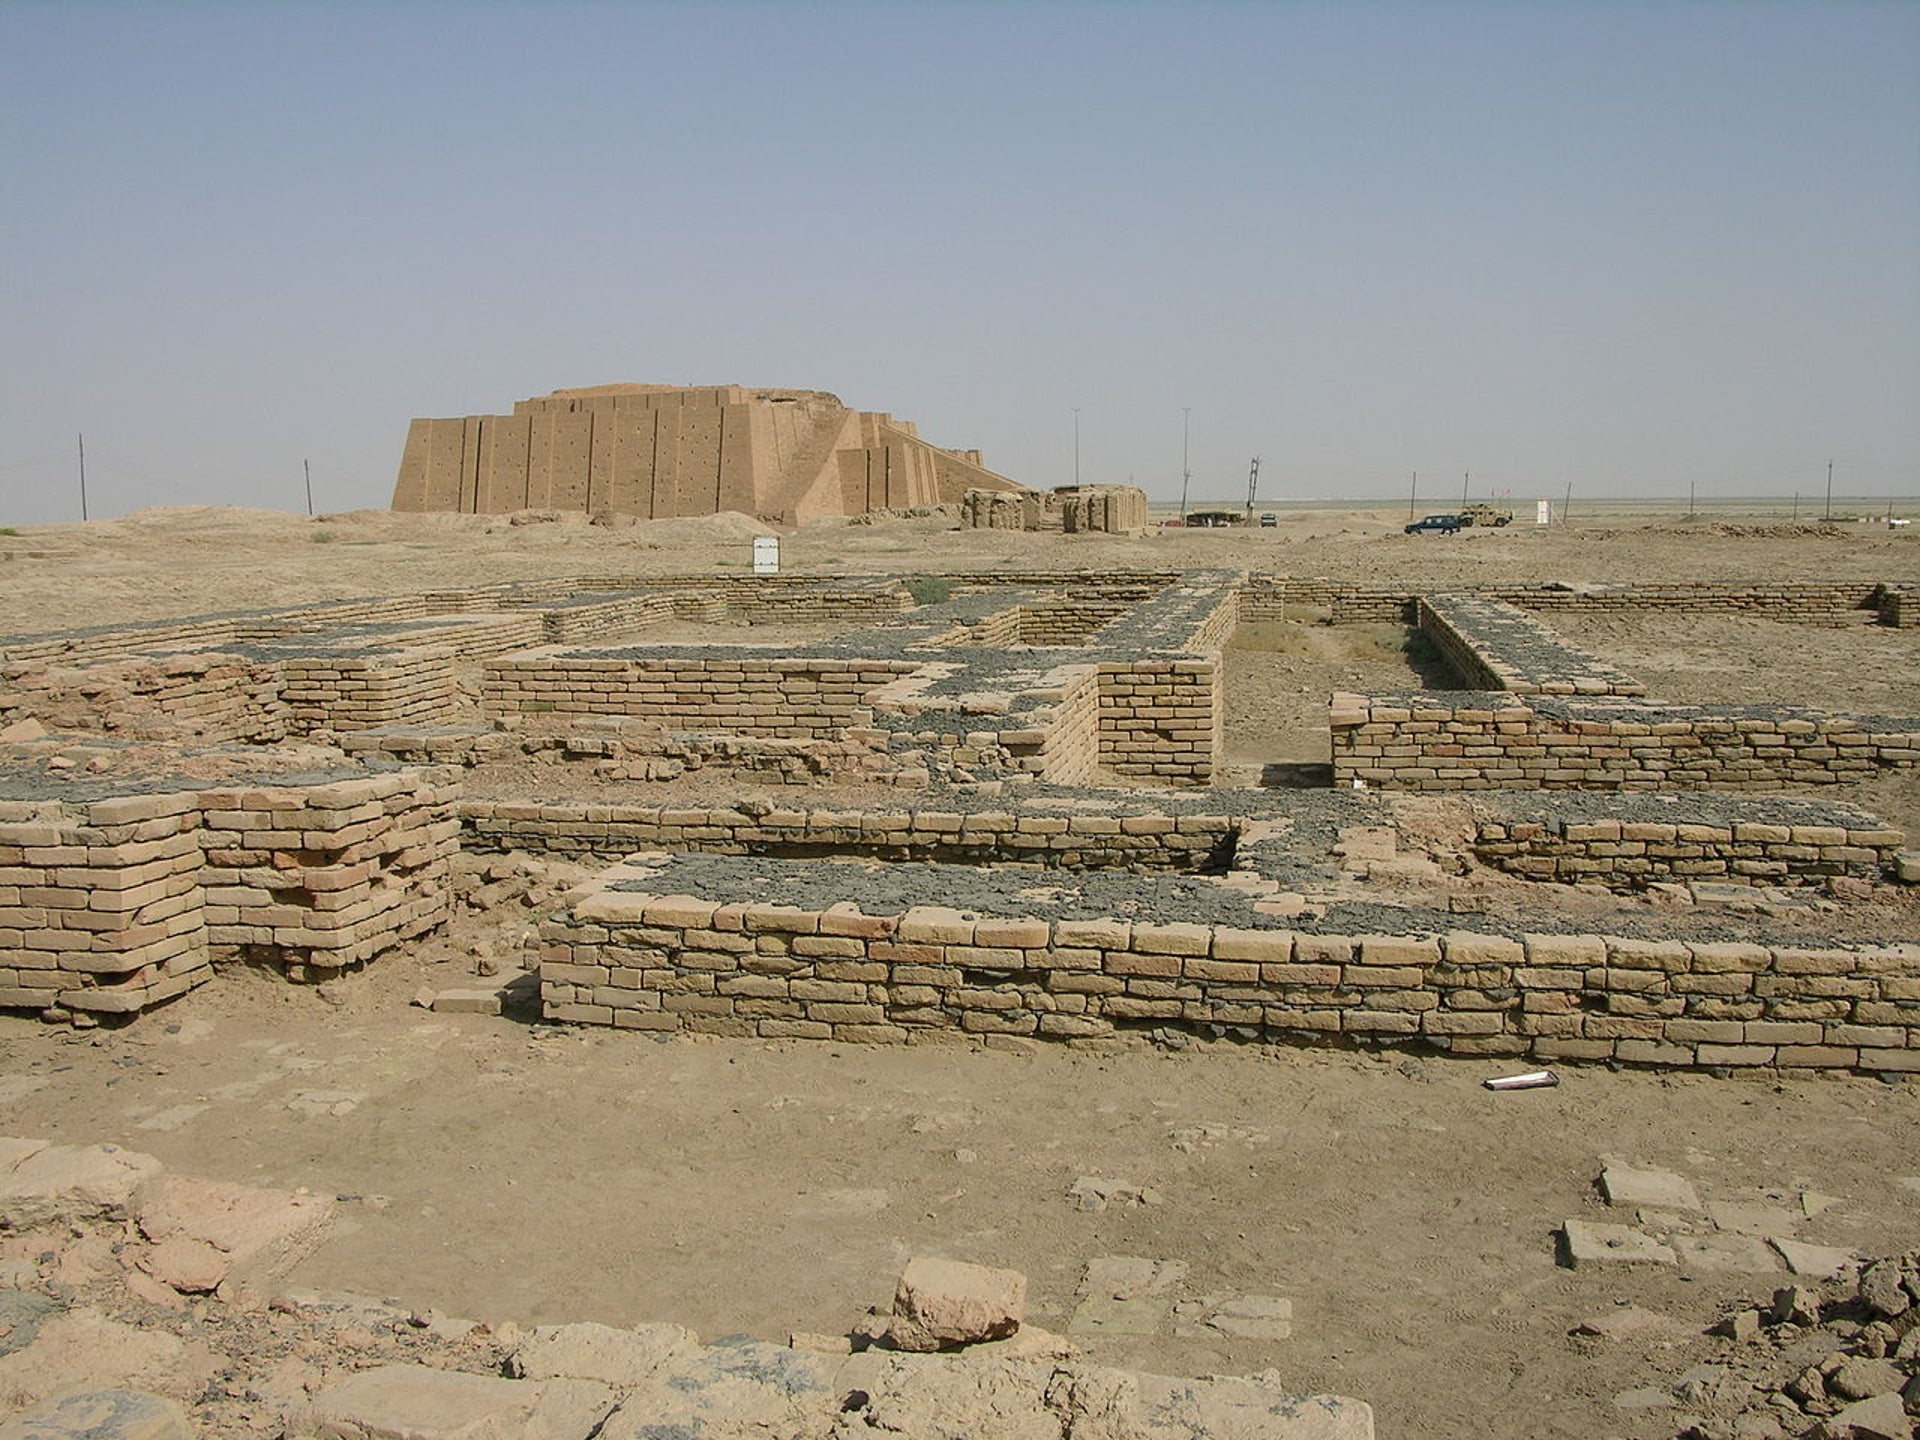 The ruins of Ur, with the Ziggurat of Ur visible in the background.